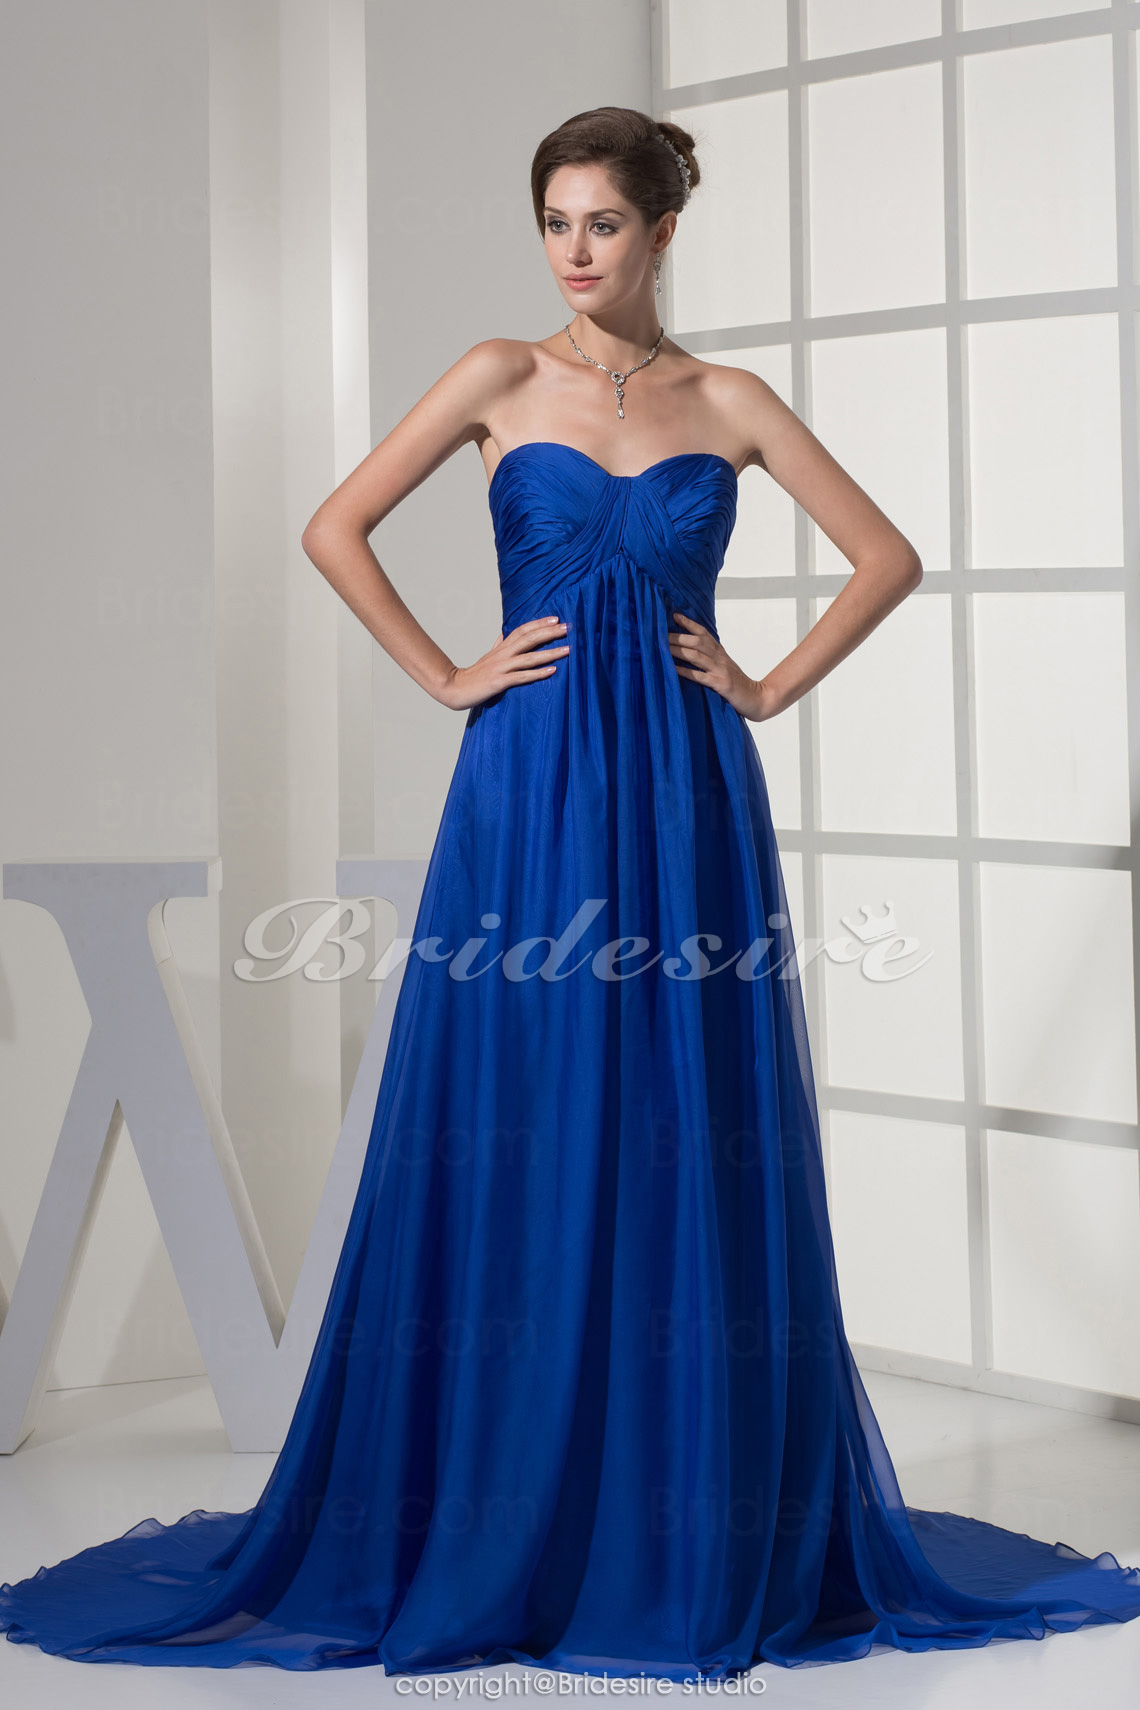 A-line Sweetheart Court Train Sleeveless Chiffon Dress